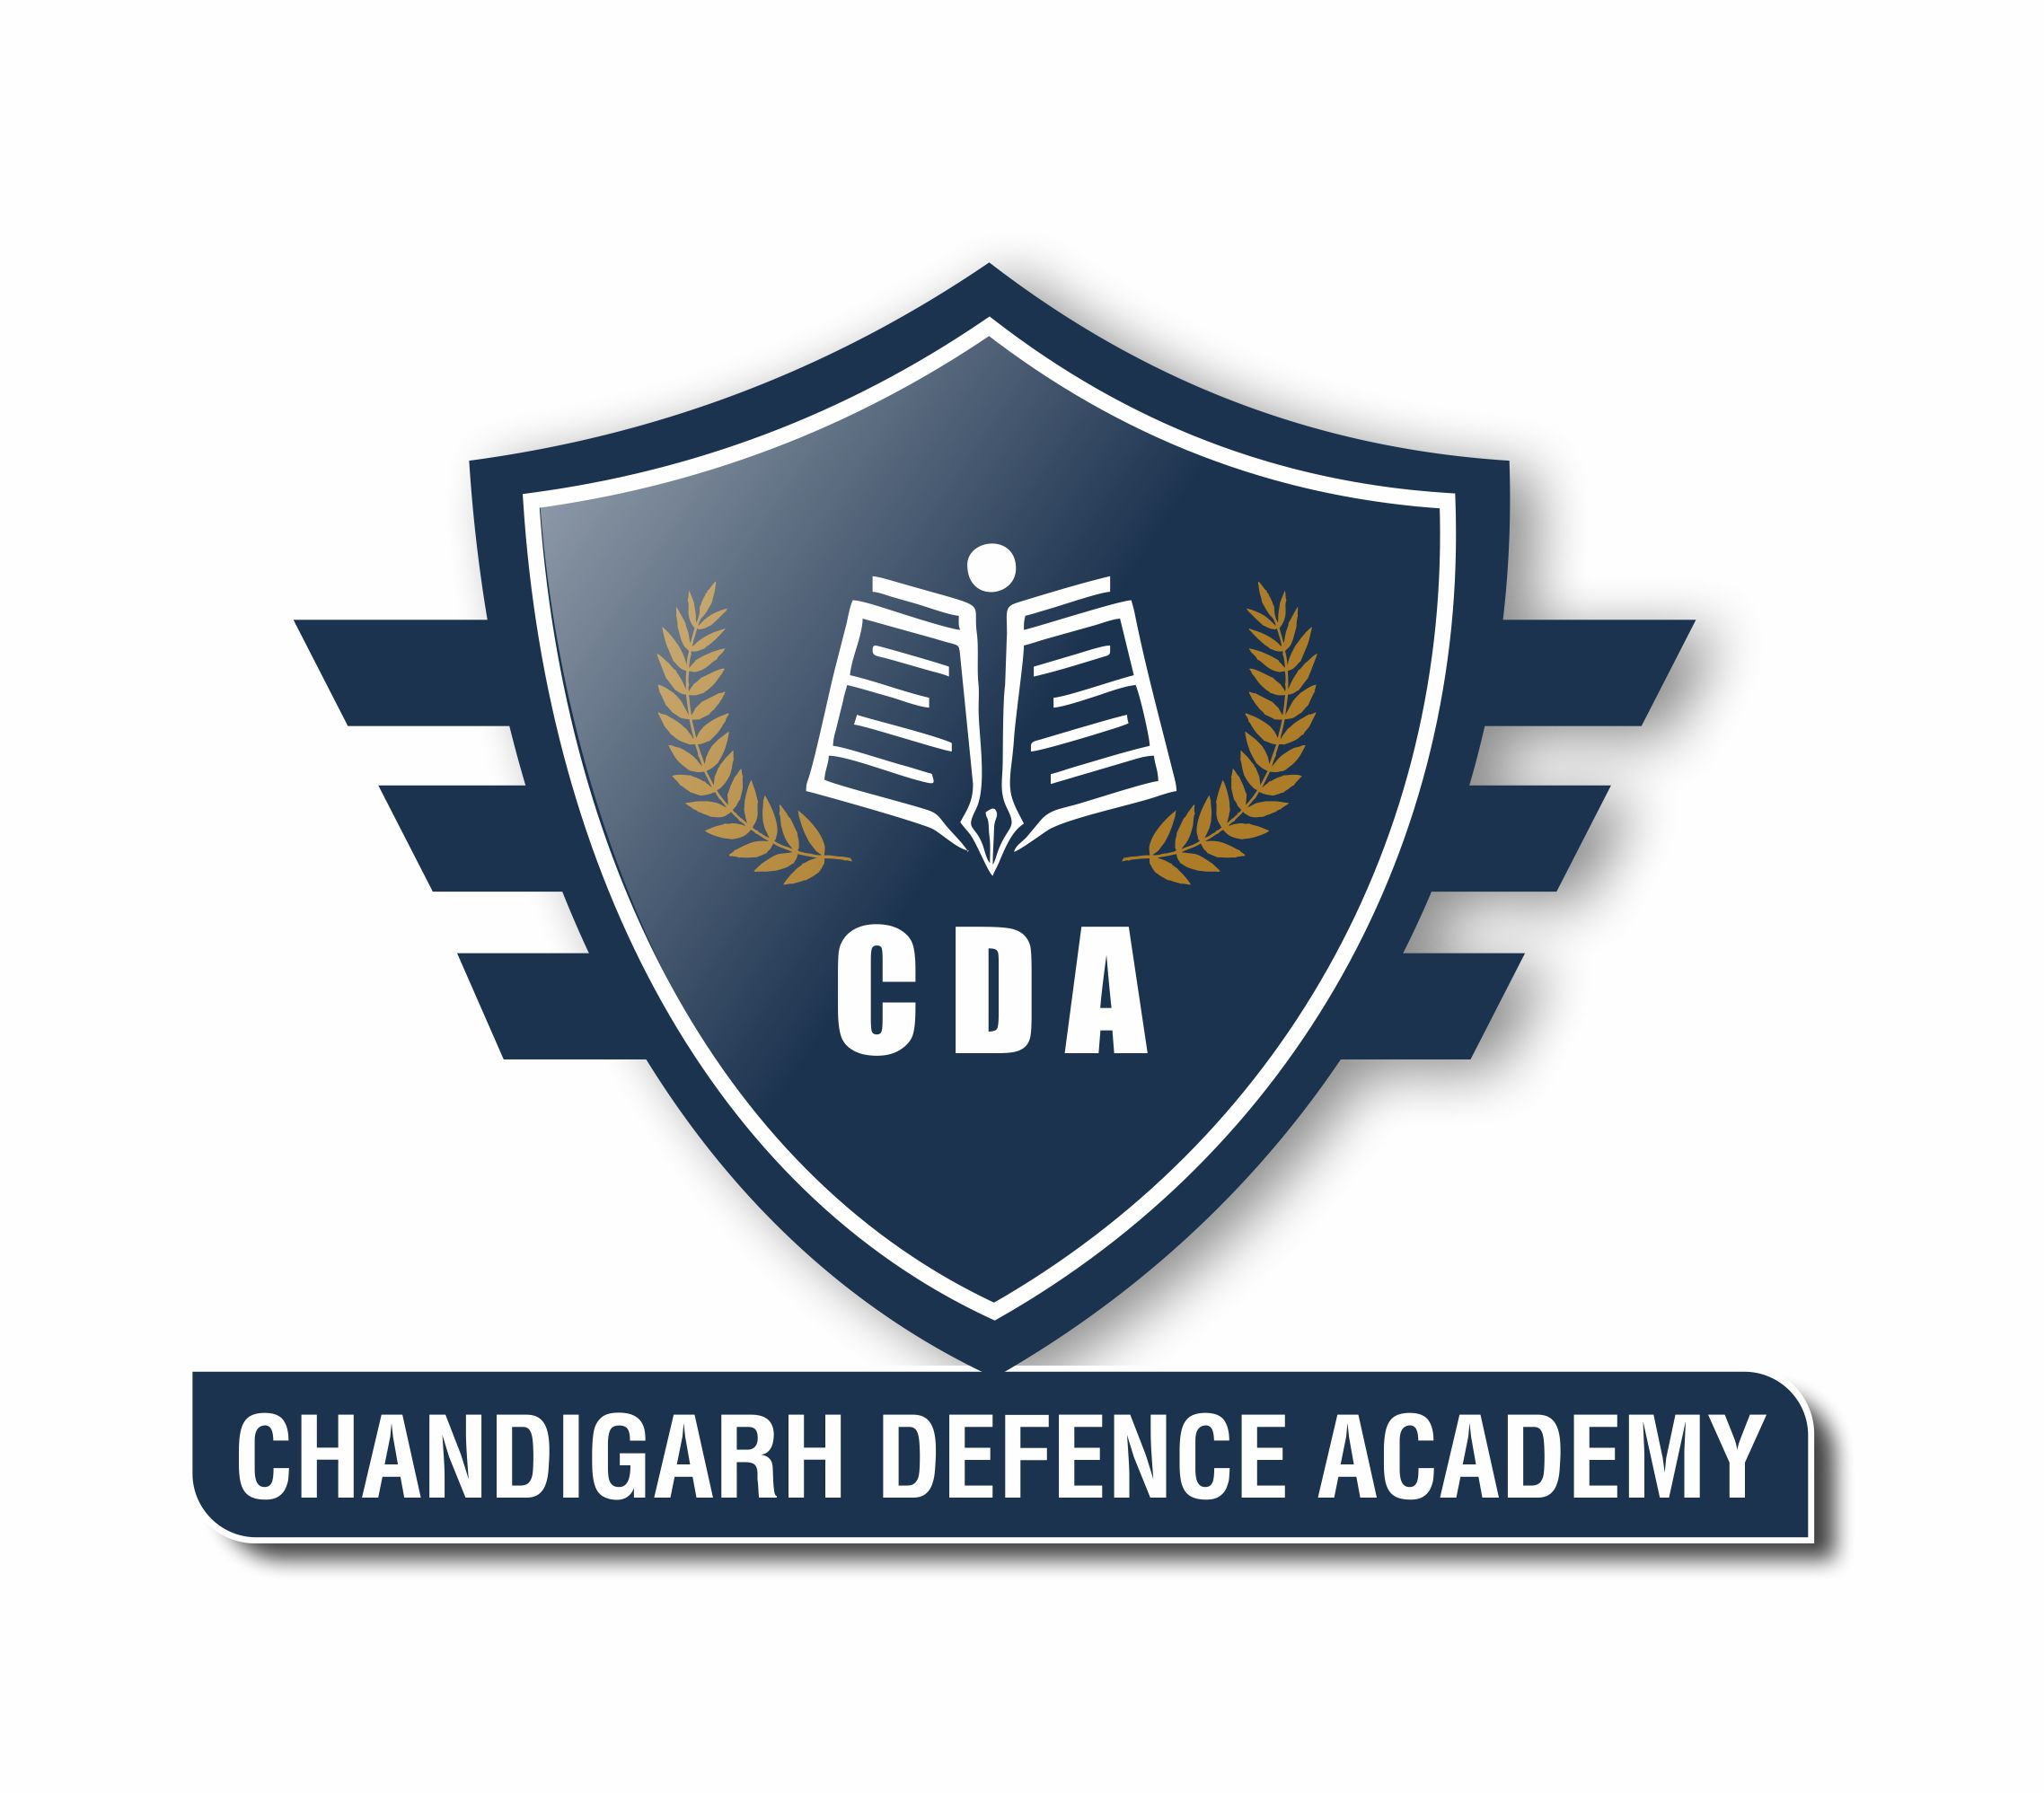 CHANDIGARH DEFENCE ACADEMY